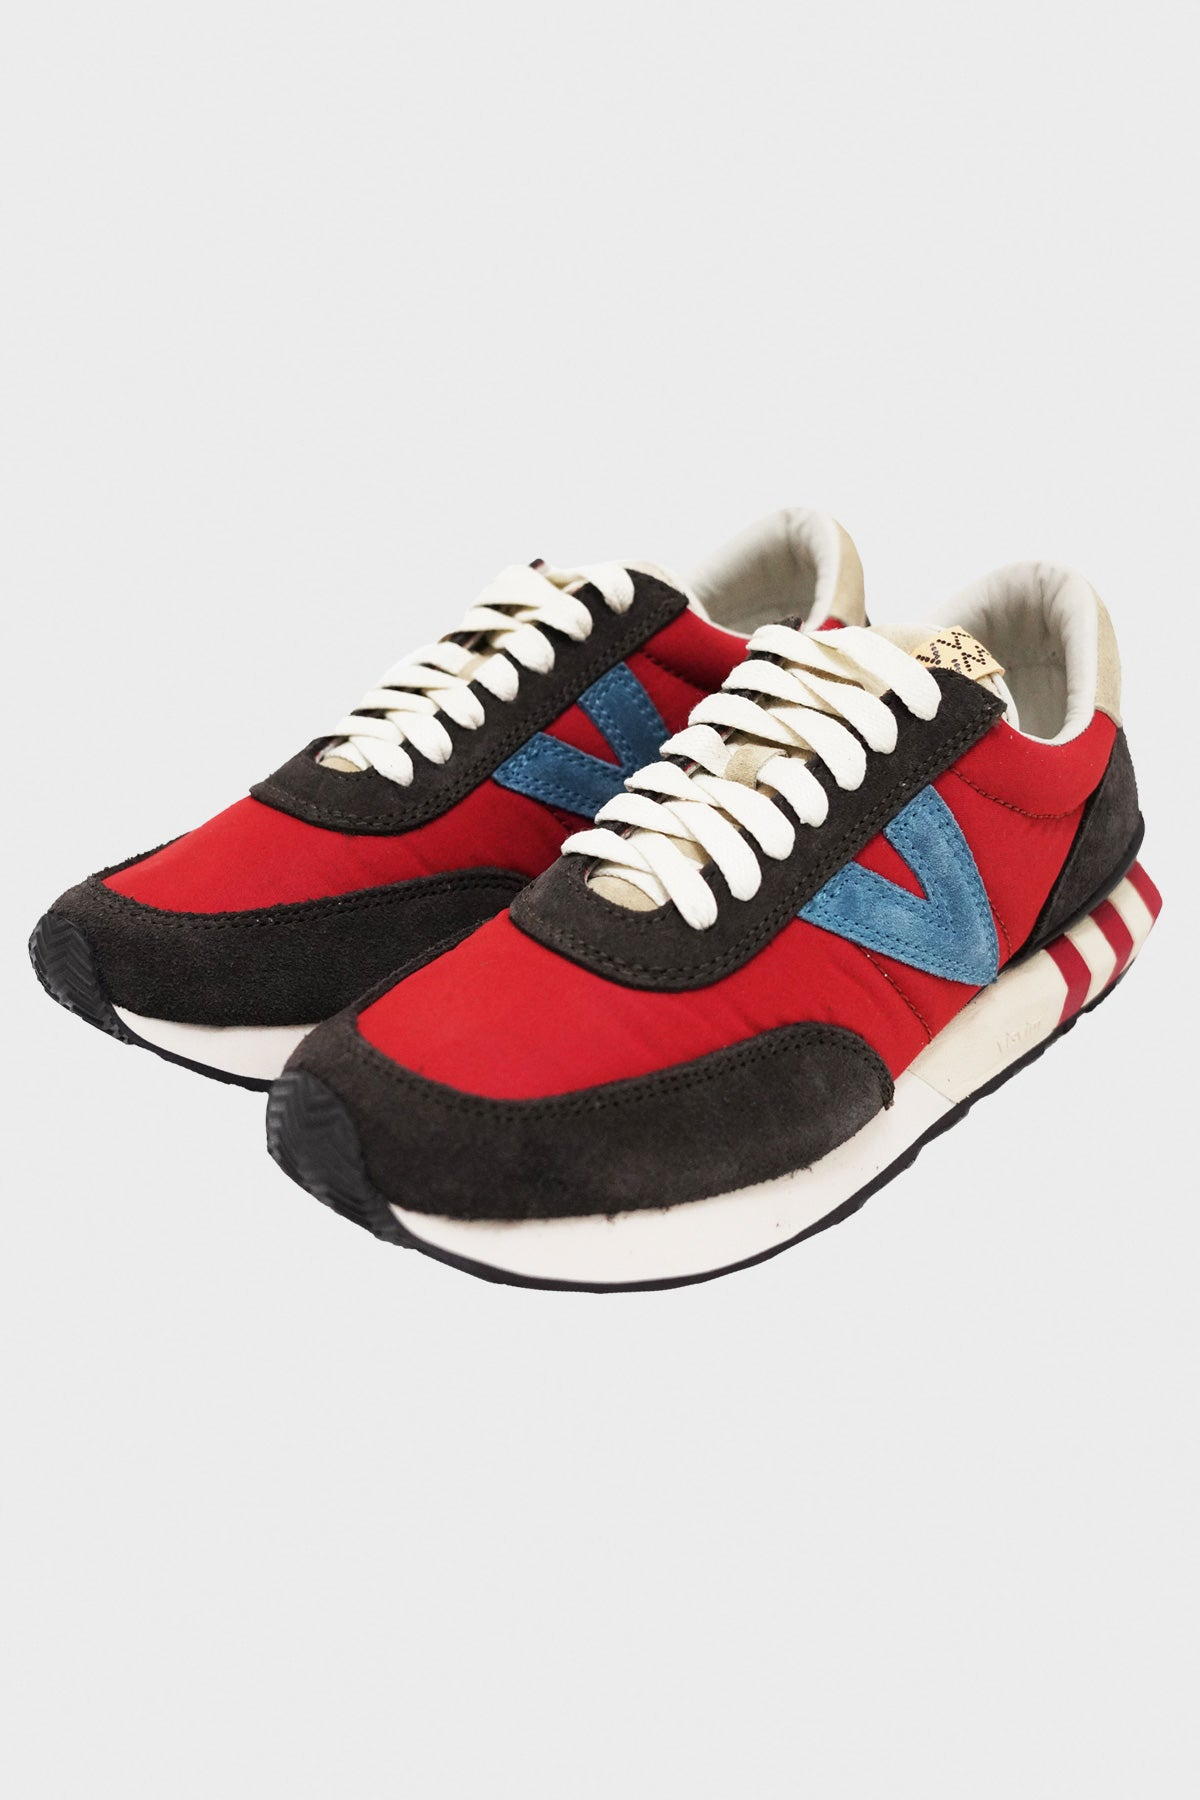 Visvim - Attica Trainer - Red - Canoe Club